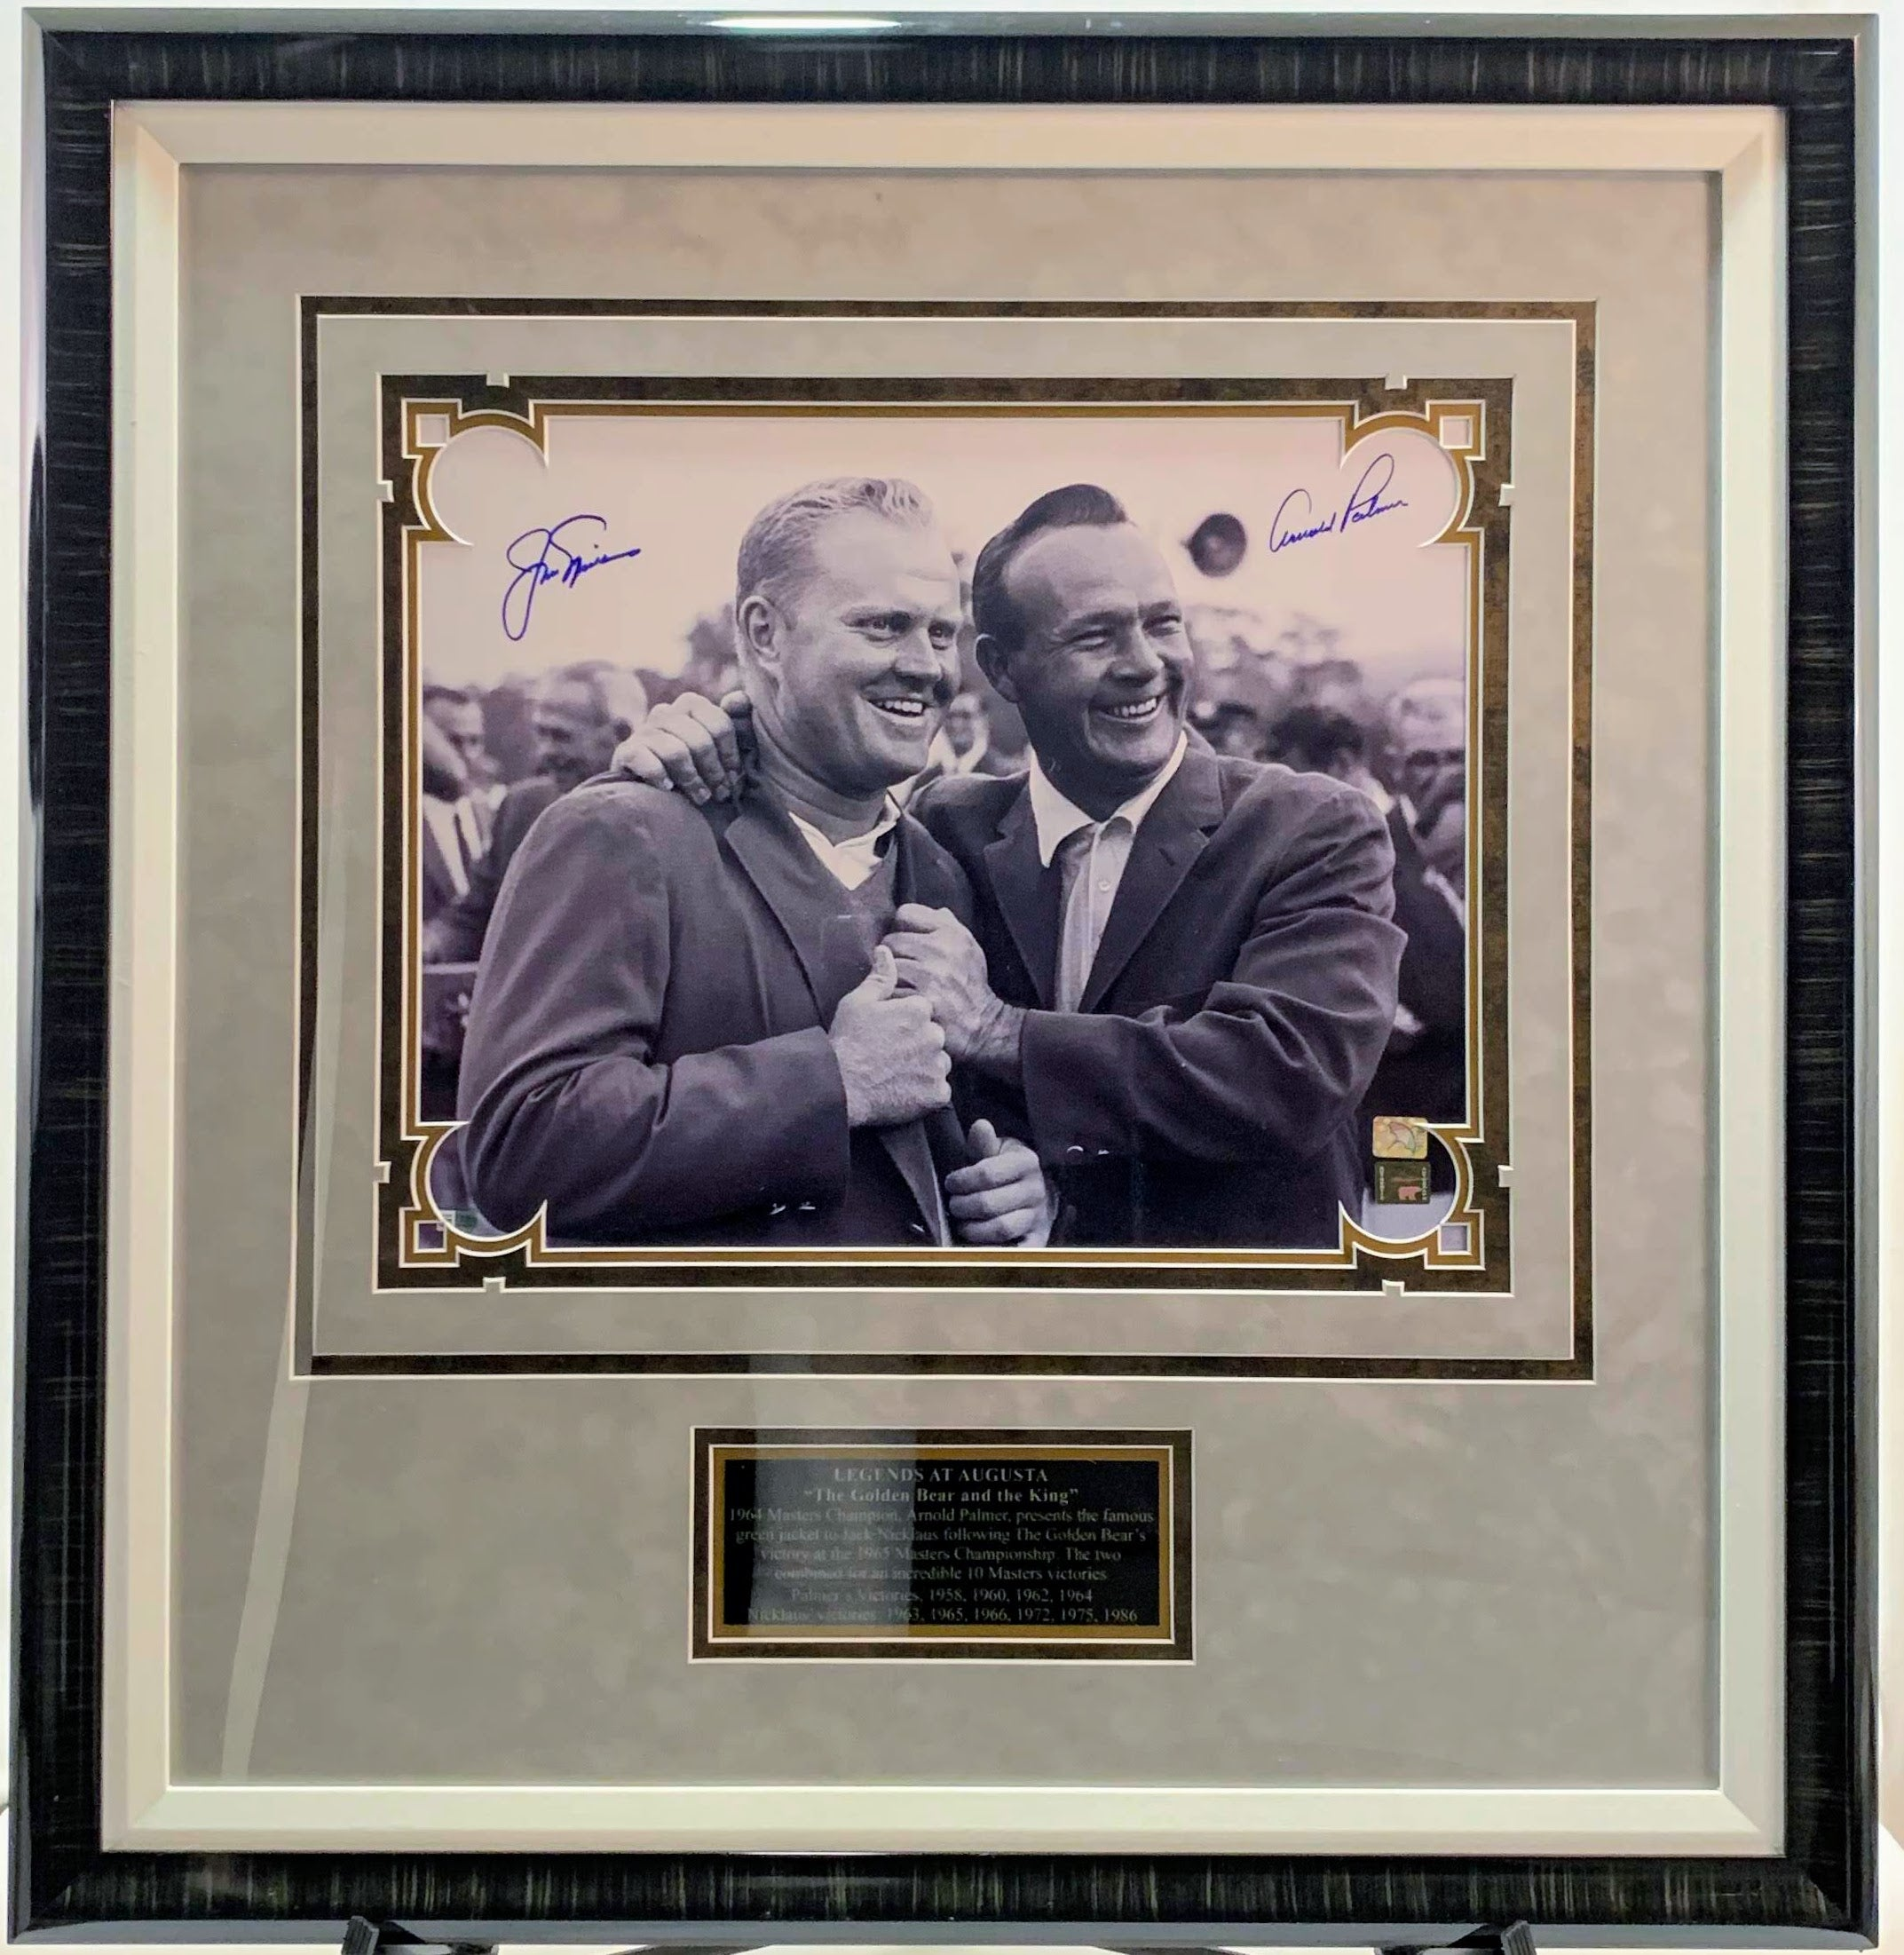 Jack Nicklaus & Arnold Palmer Signed Deluxe 16x20 Photo - Latitude Sports Marketing